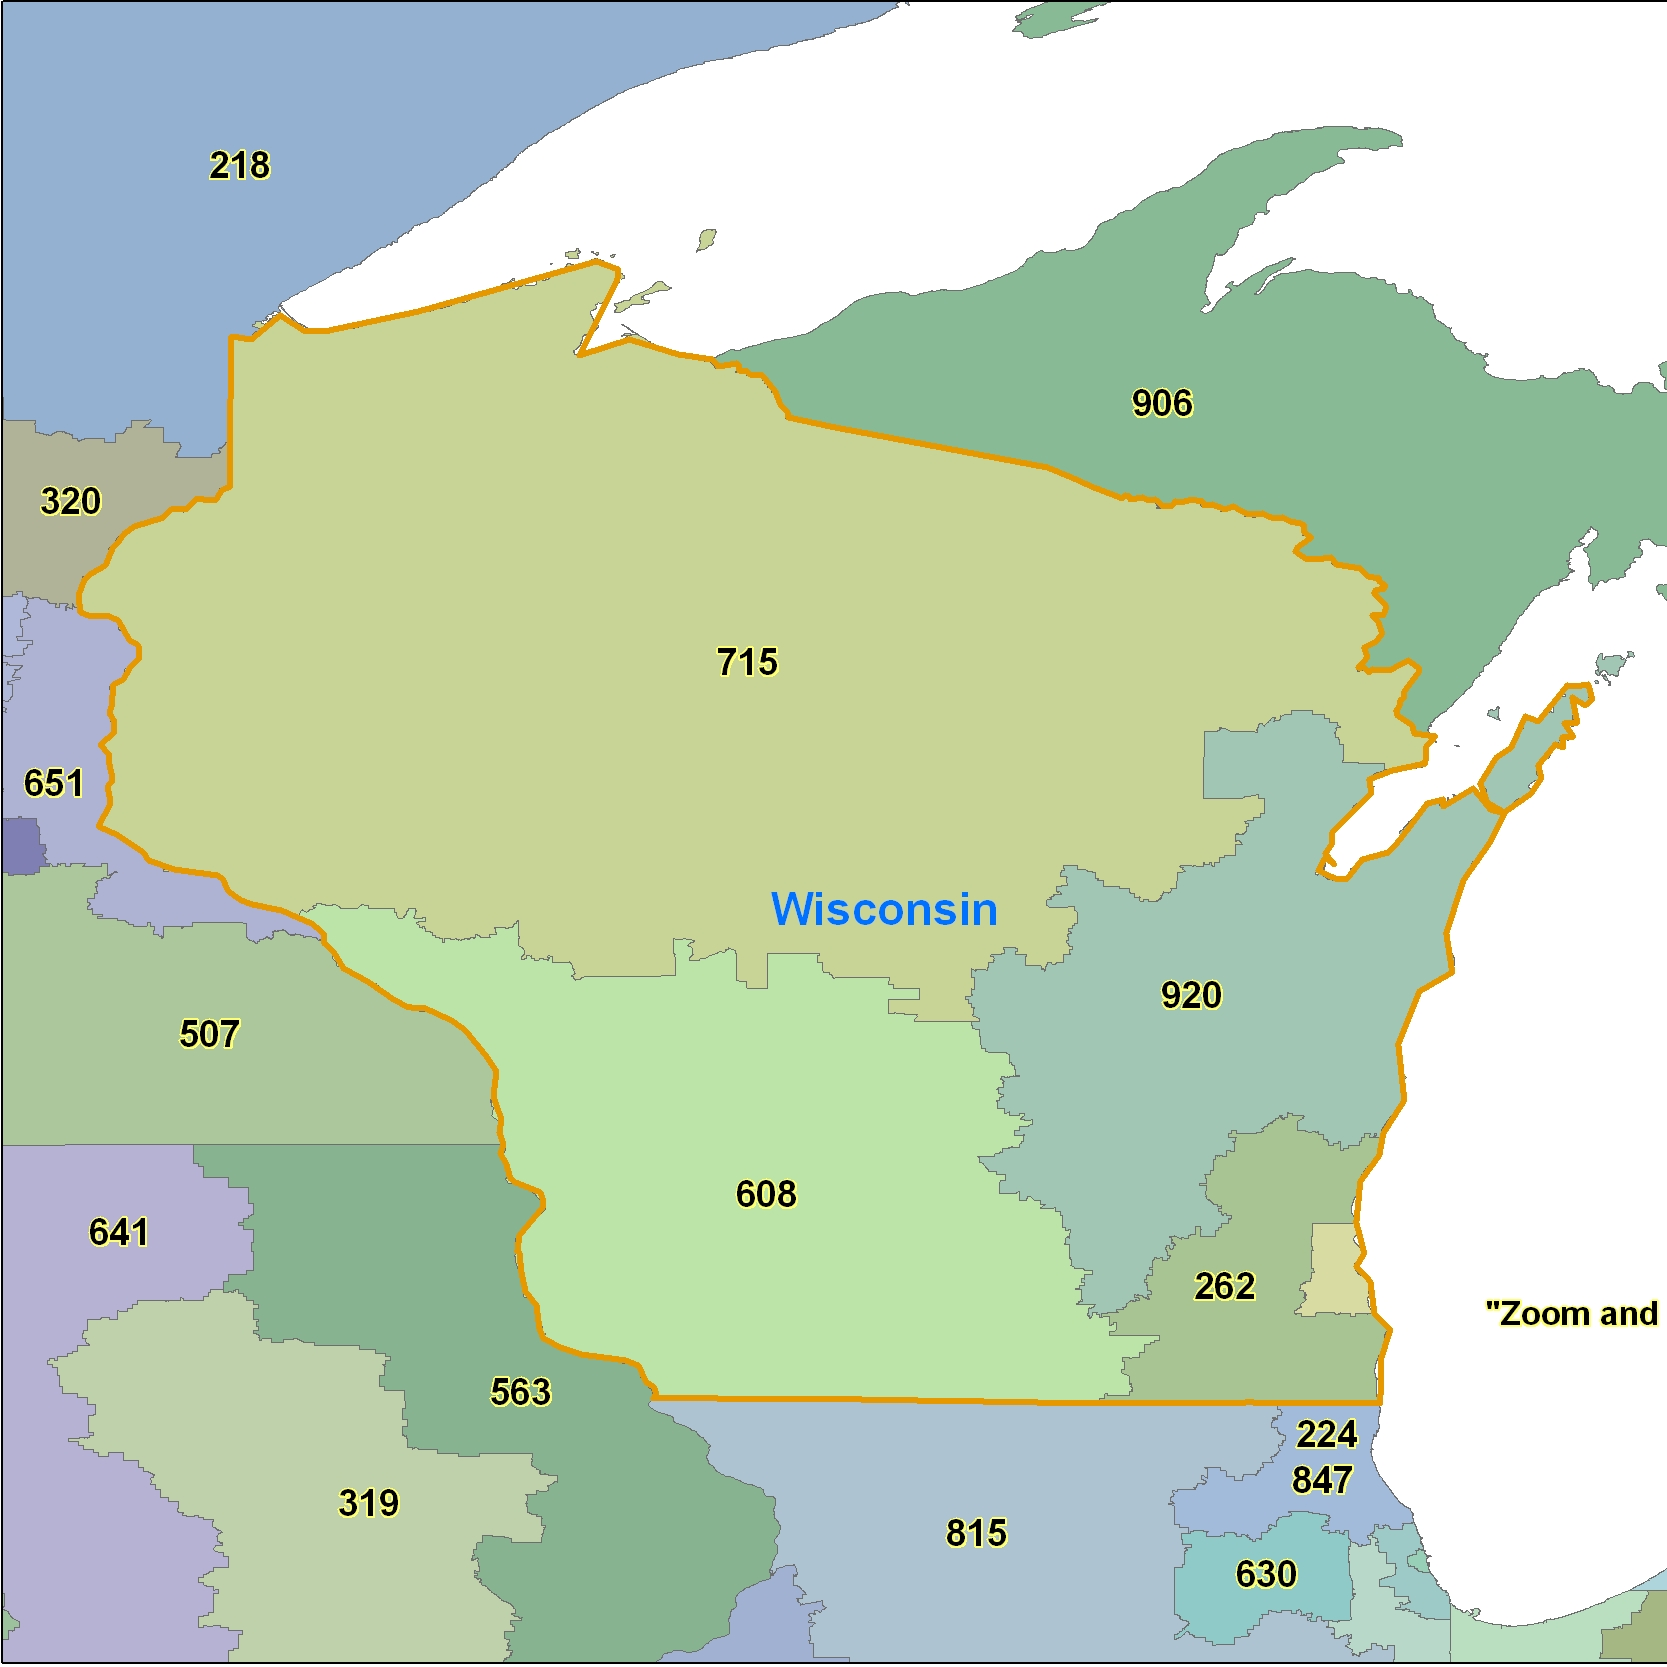 Wisconsin Area Code Maps Wisconsin Telephone Area Code Maps Free - Area code wisconsin map